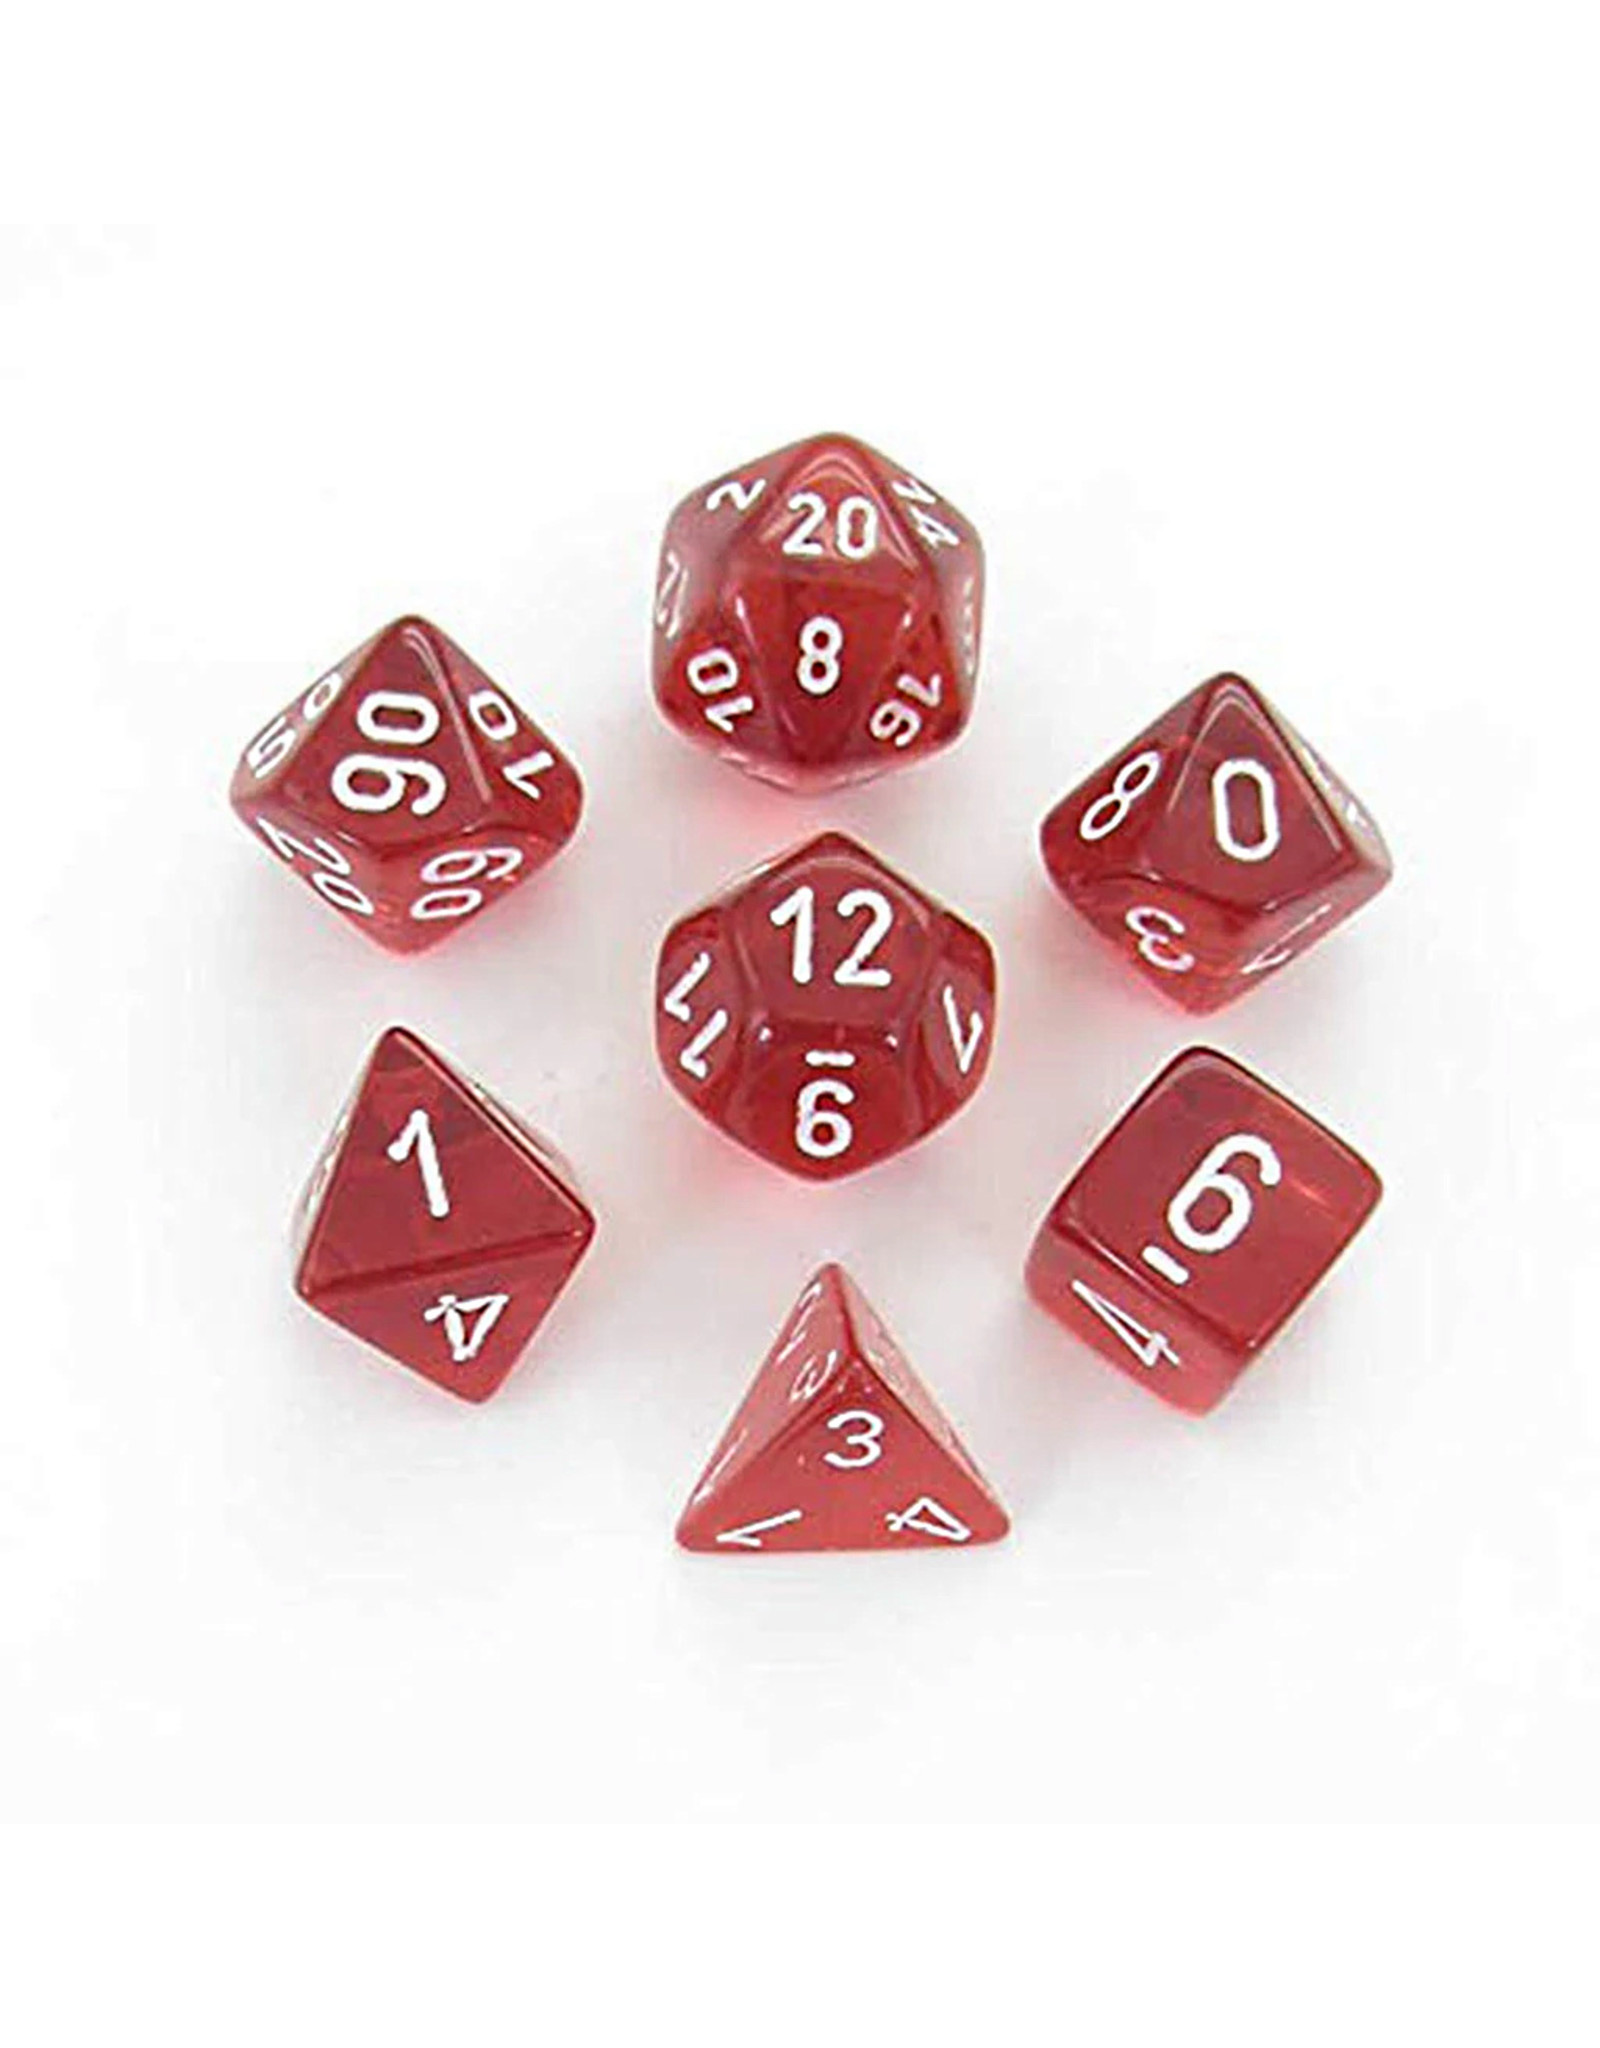 CHESSEX CHX 23074 7CT POLYHEDRAL DICE TRANSLUCENT RED/WHITE